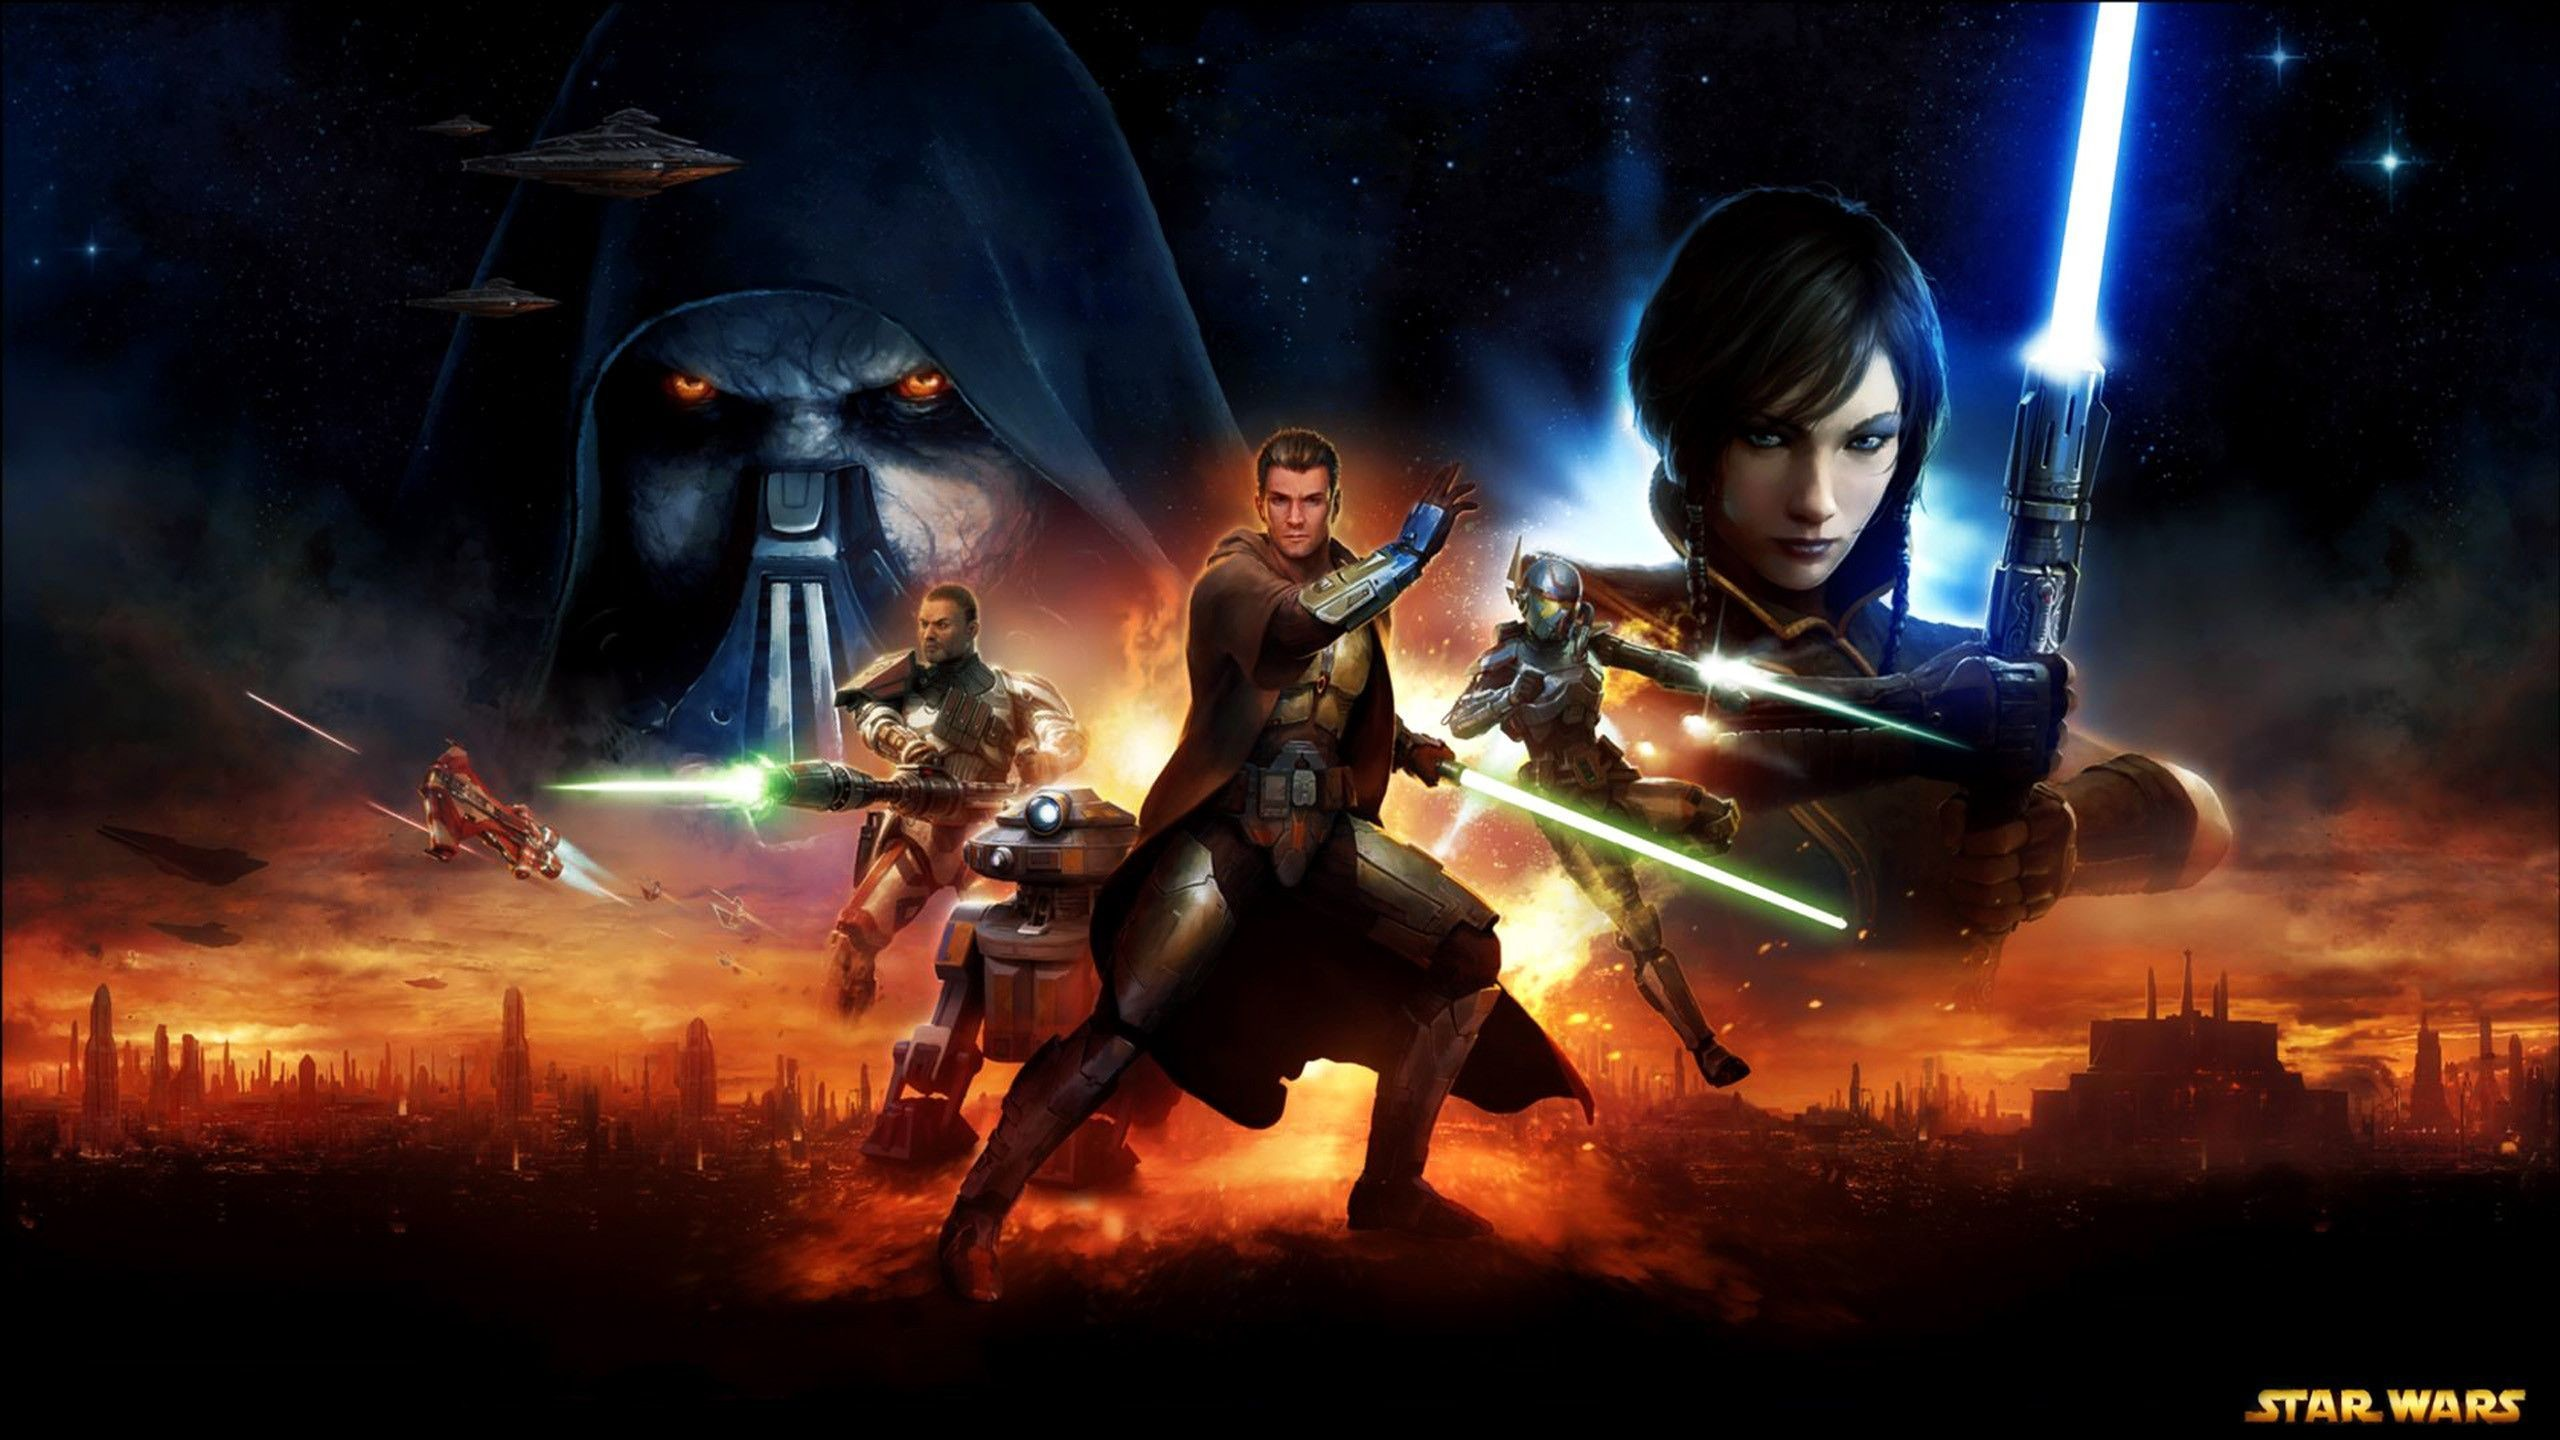 Star Wars: The Old Republic Wallpapers 1920×1080 – Wallpaper Cave